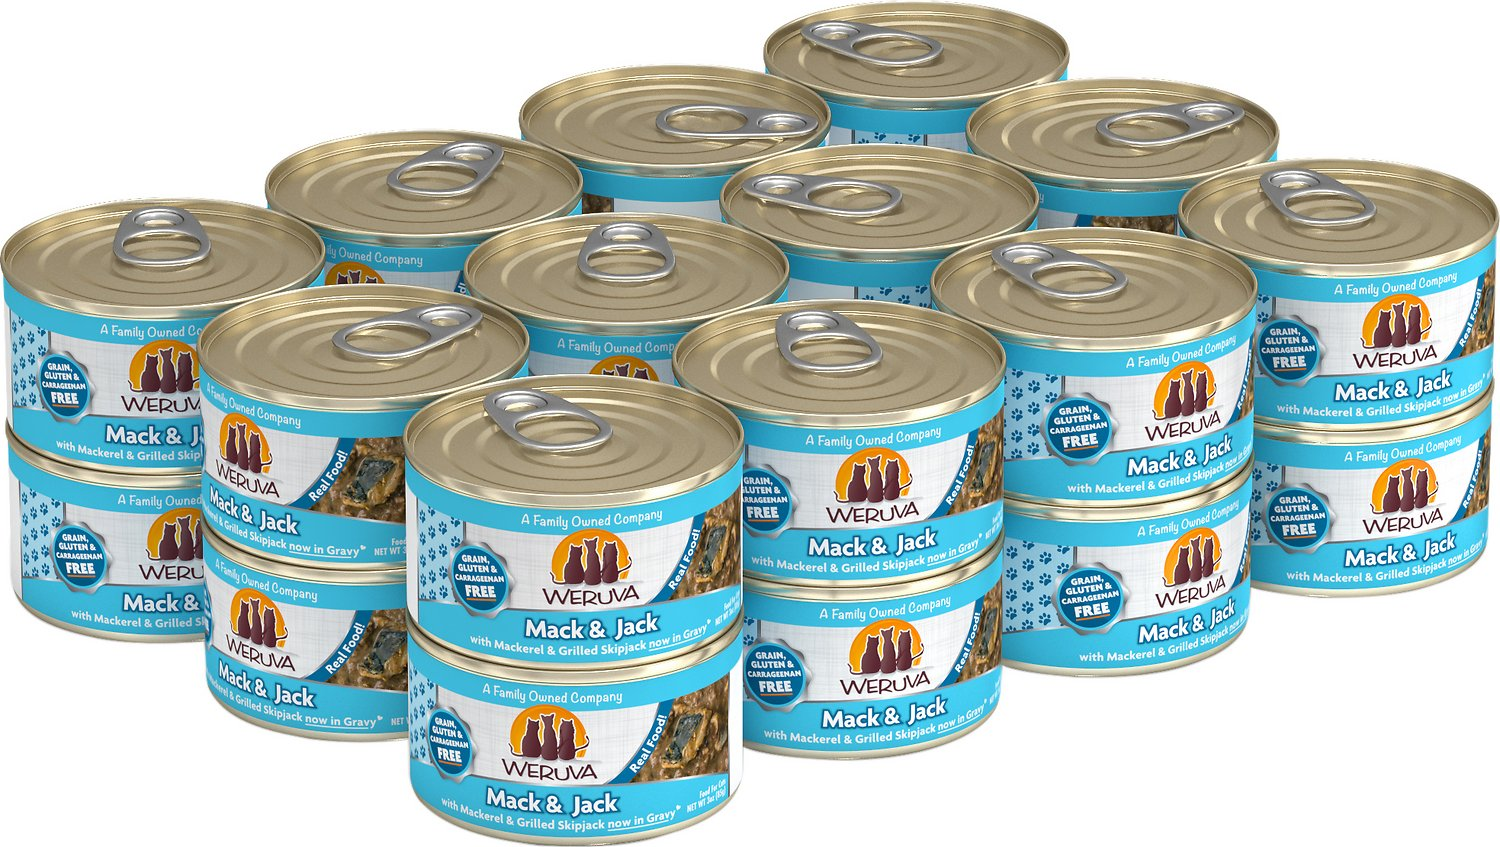 Weruva Cat Classic Mack and Jack with Mackerel & Grilled Skipjack Grain-Free Wet Cat Food, 3-oz, case of 24